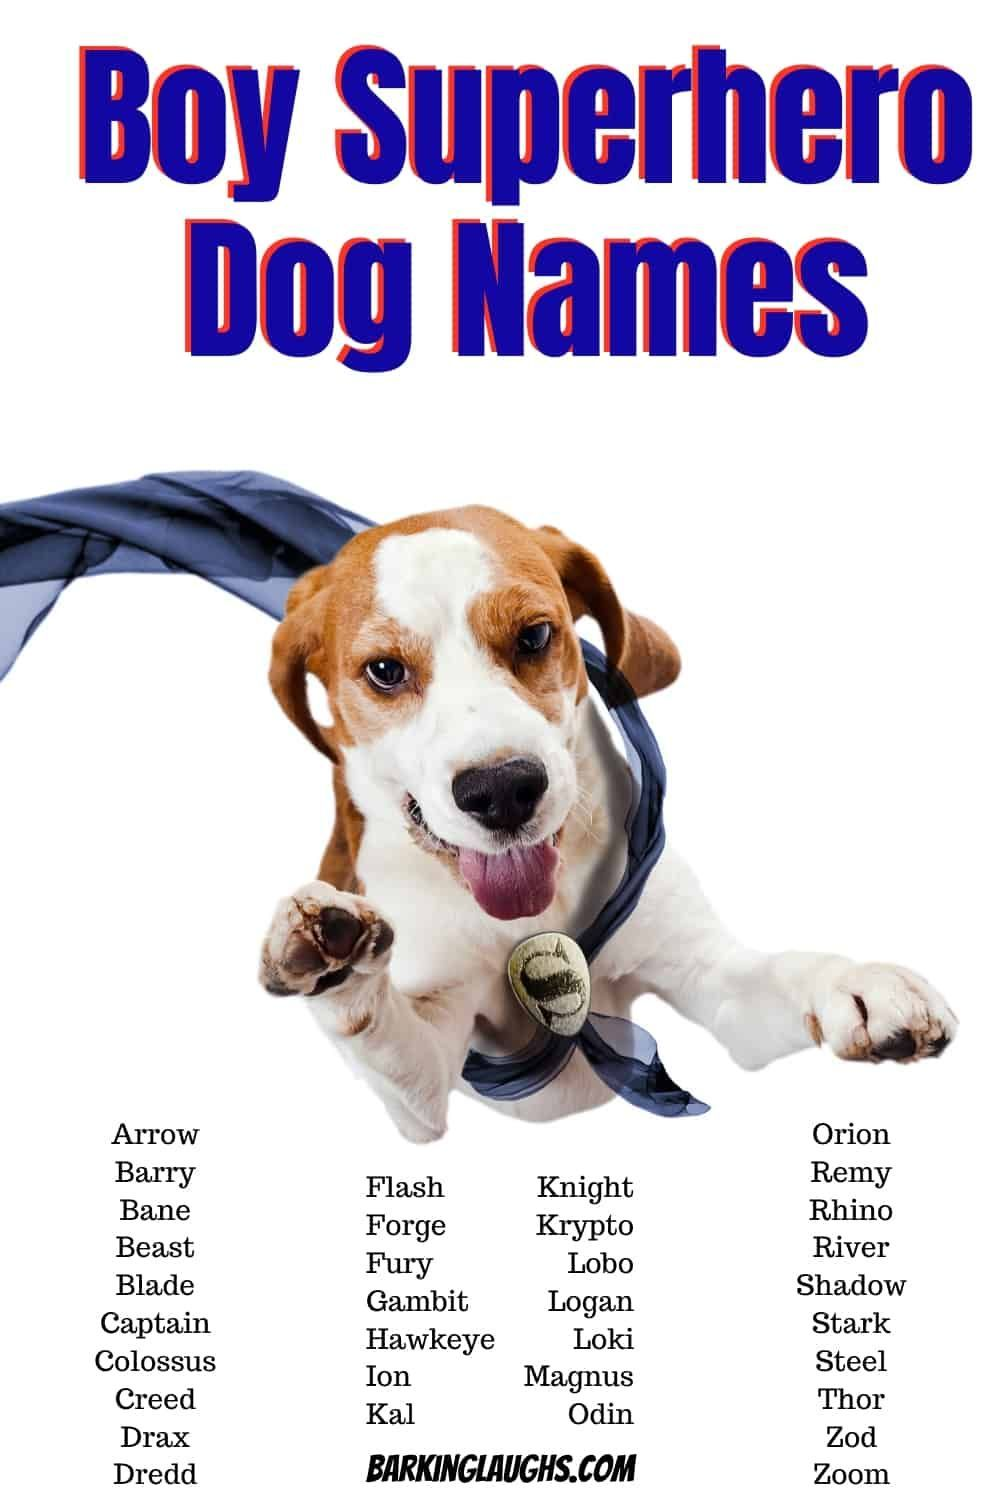 Some Boy Superhero Dog Names Are You Looking For Awesome Male Dog Names We Have Over 350 Boy Dog Names With In 2020 Boy Dog Names Dogs Names List Good Boy Dog Names